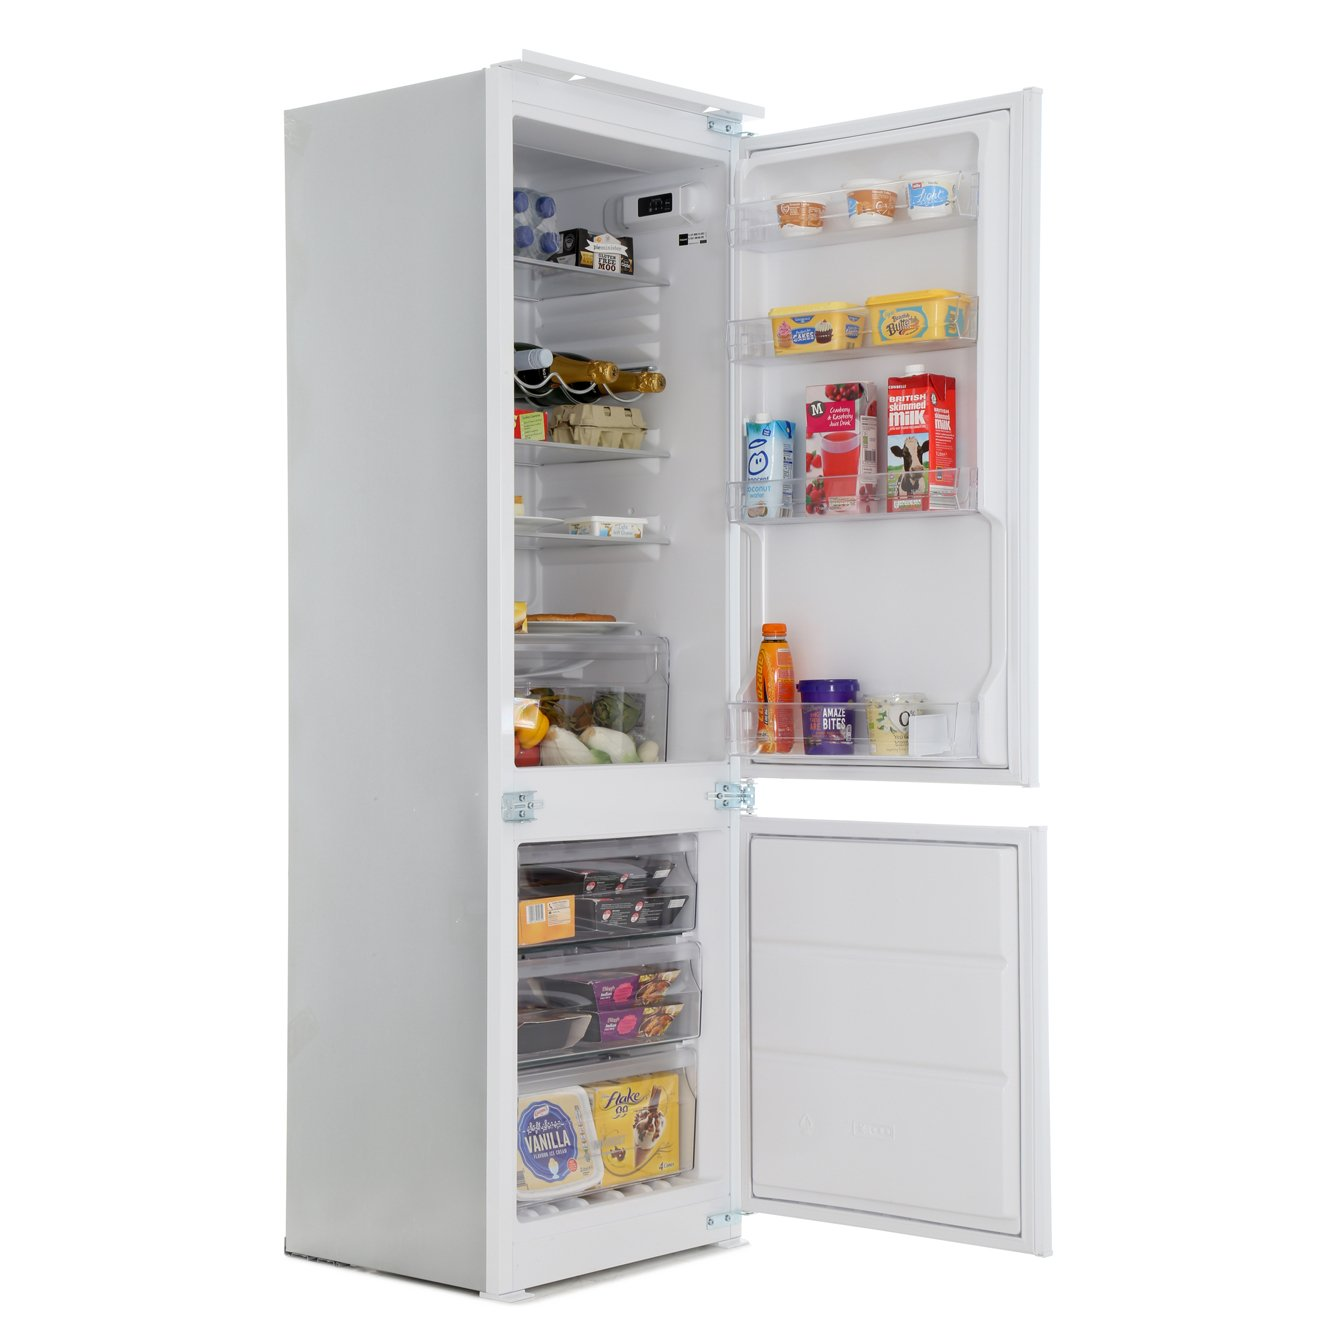 Buy Hotpoint Hmcb7030aadf Frost Free Integrated Fridge